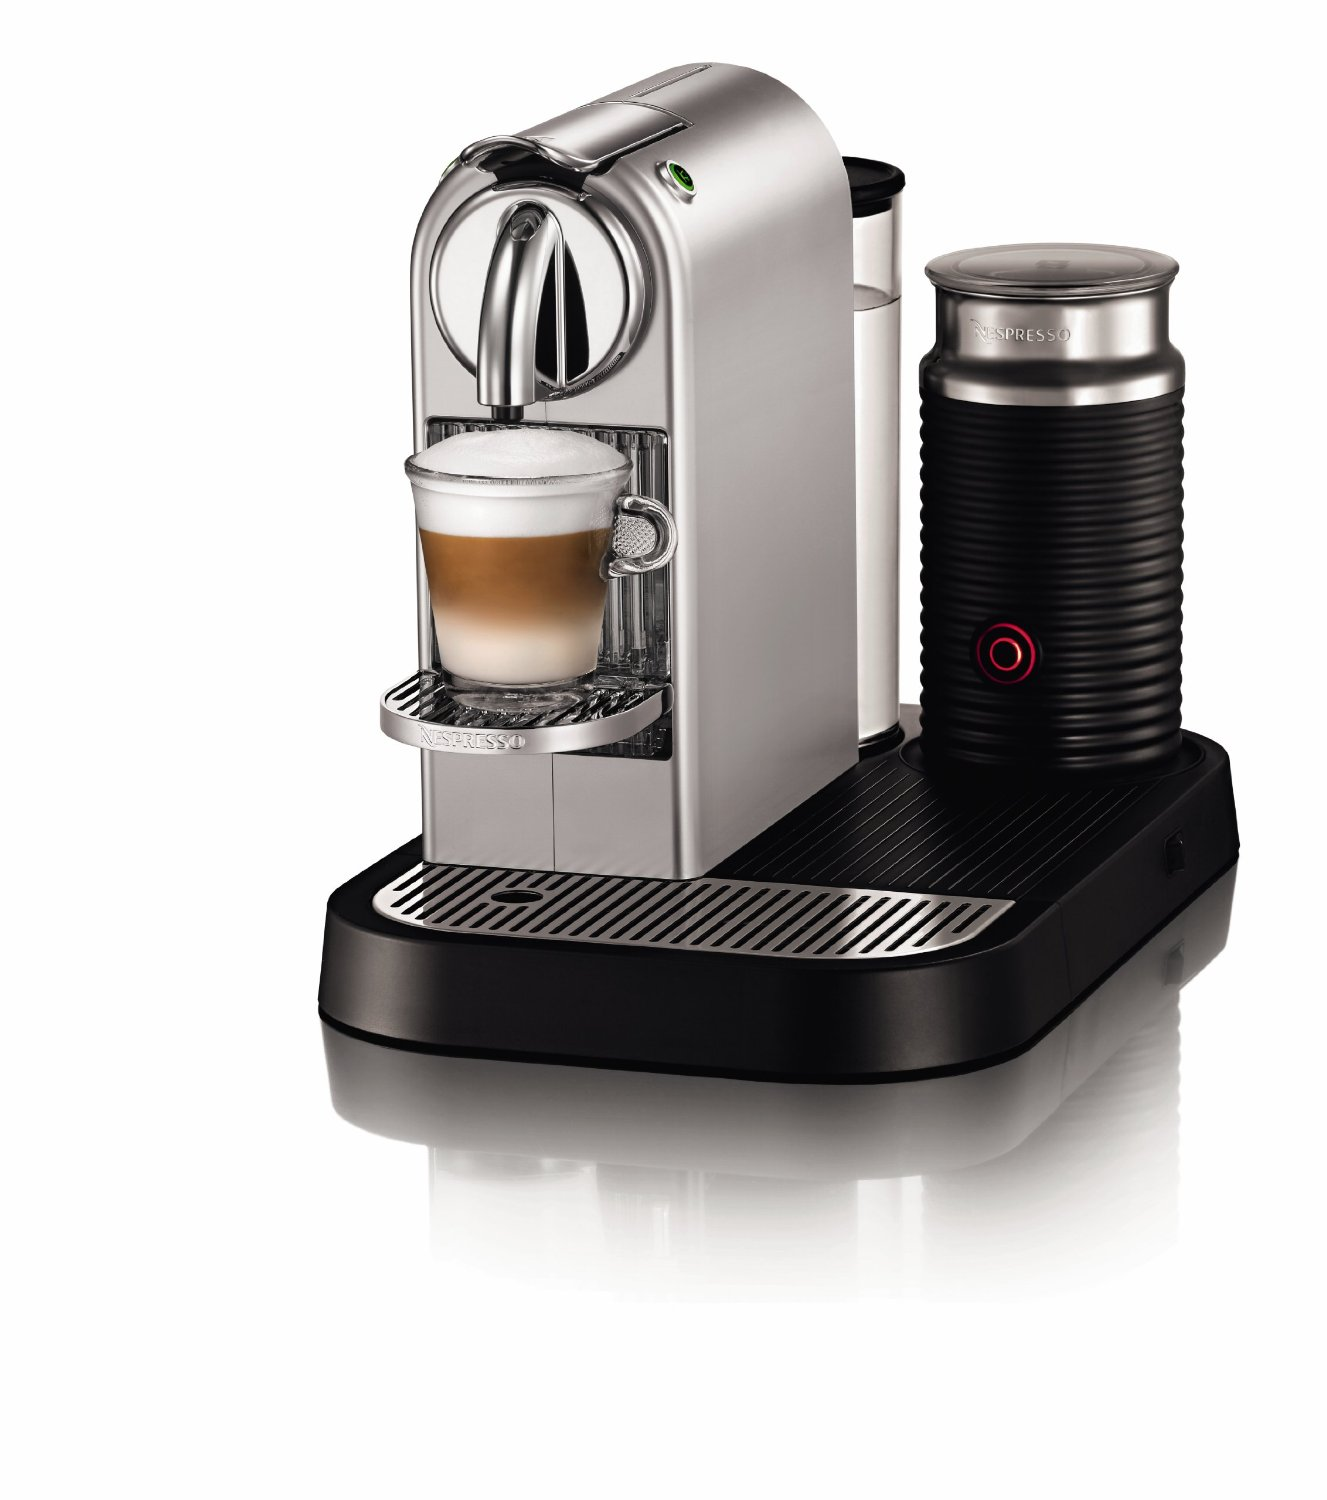 espresso maker machine